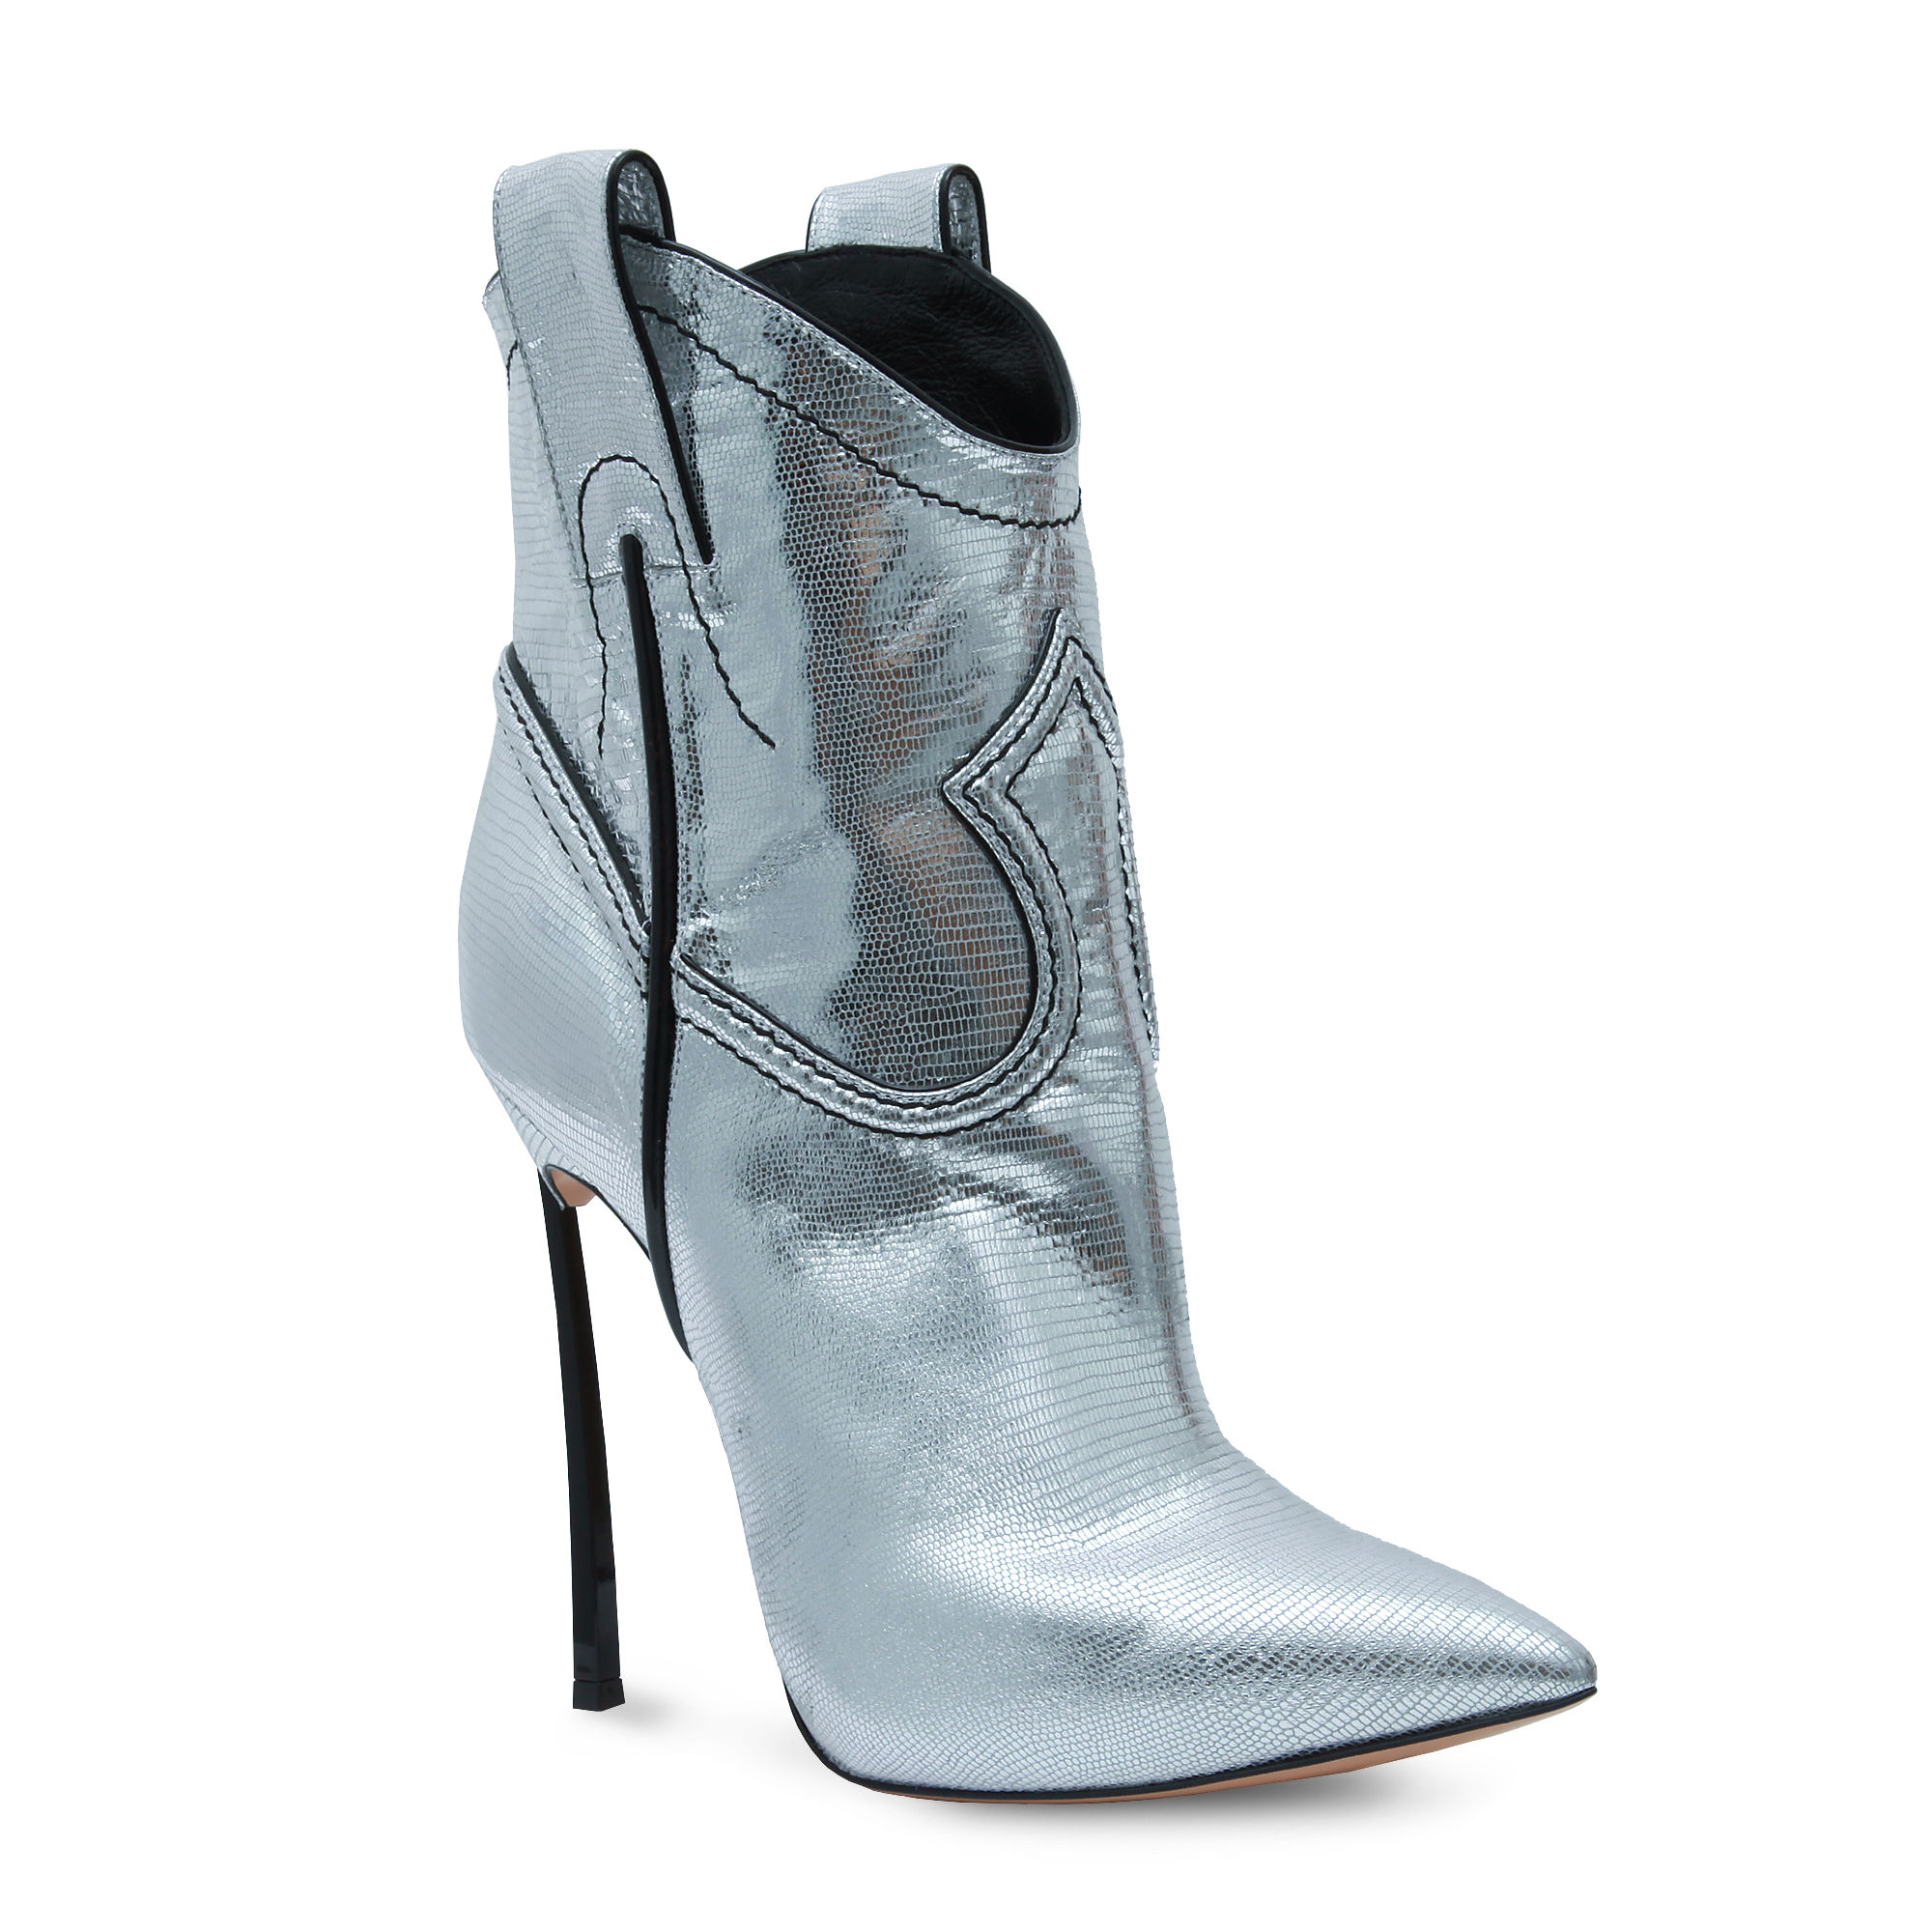 Casadei western inspired boots prices for sale buy cheap marketable outlet Cheapest 3jhCB0txkO